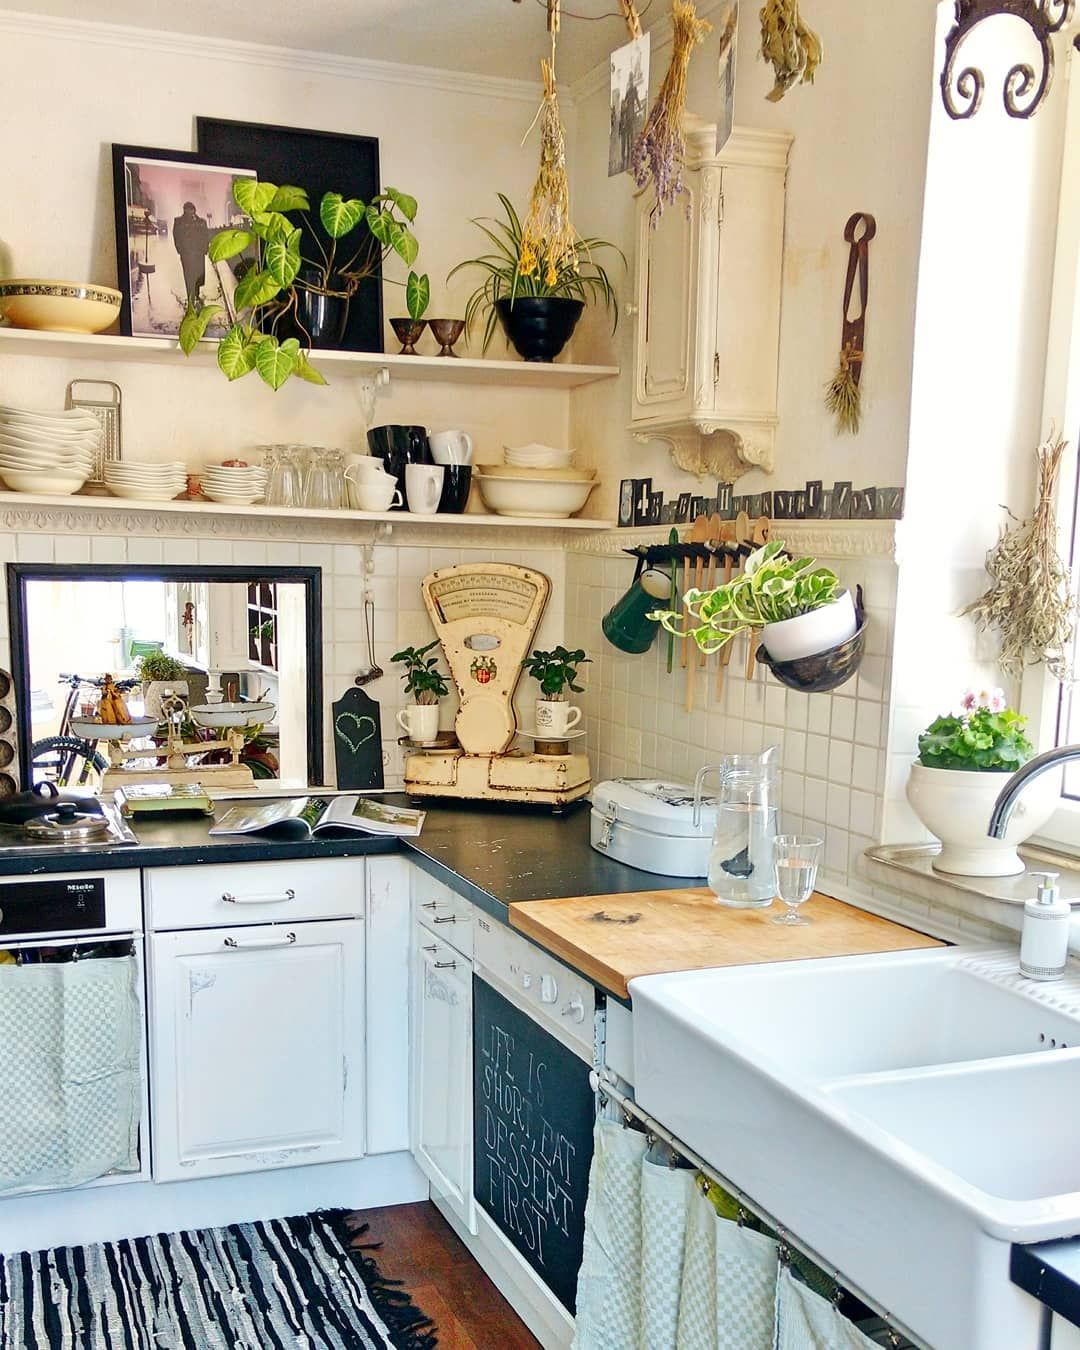 46 Fabulous Country Kitchen Designs Ideas: Pin By Lmsprinkle On Decor In 2019